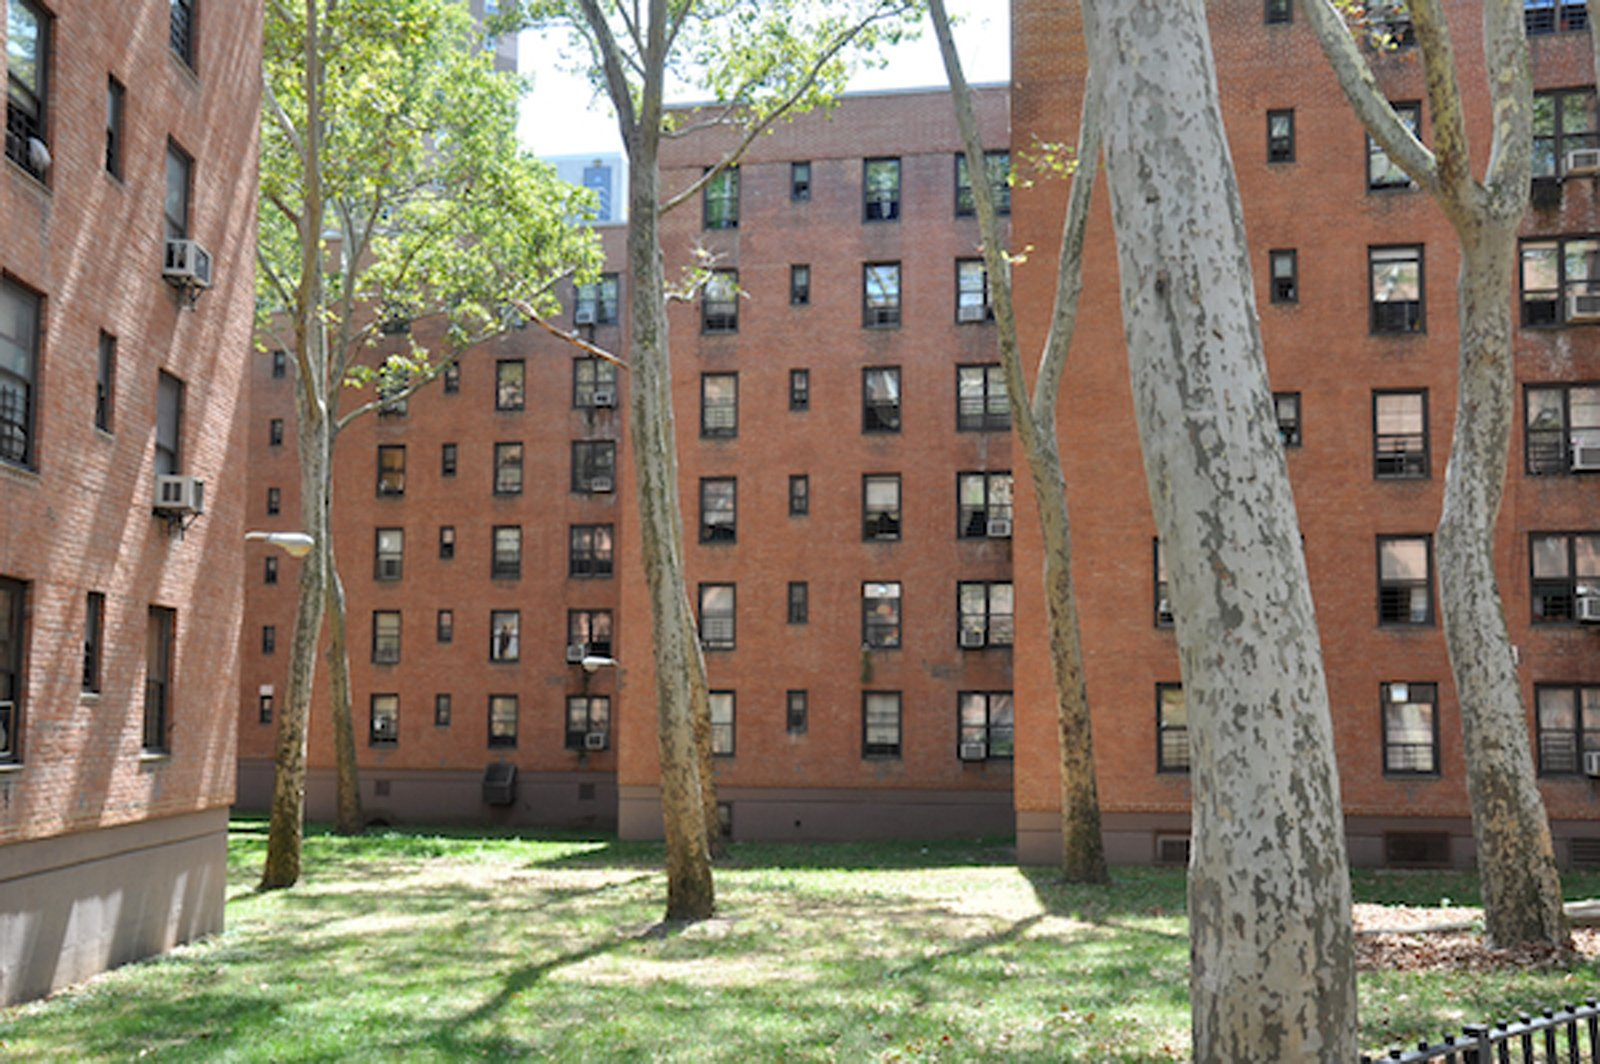 Modernism 2.0: A Tower in the Park Even Jane Jacobs Could Love - Dwell